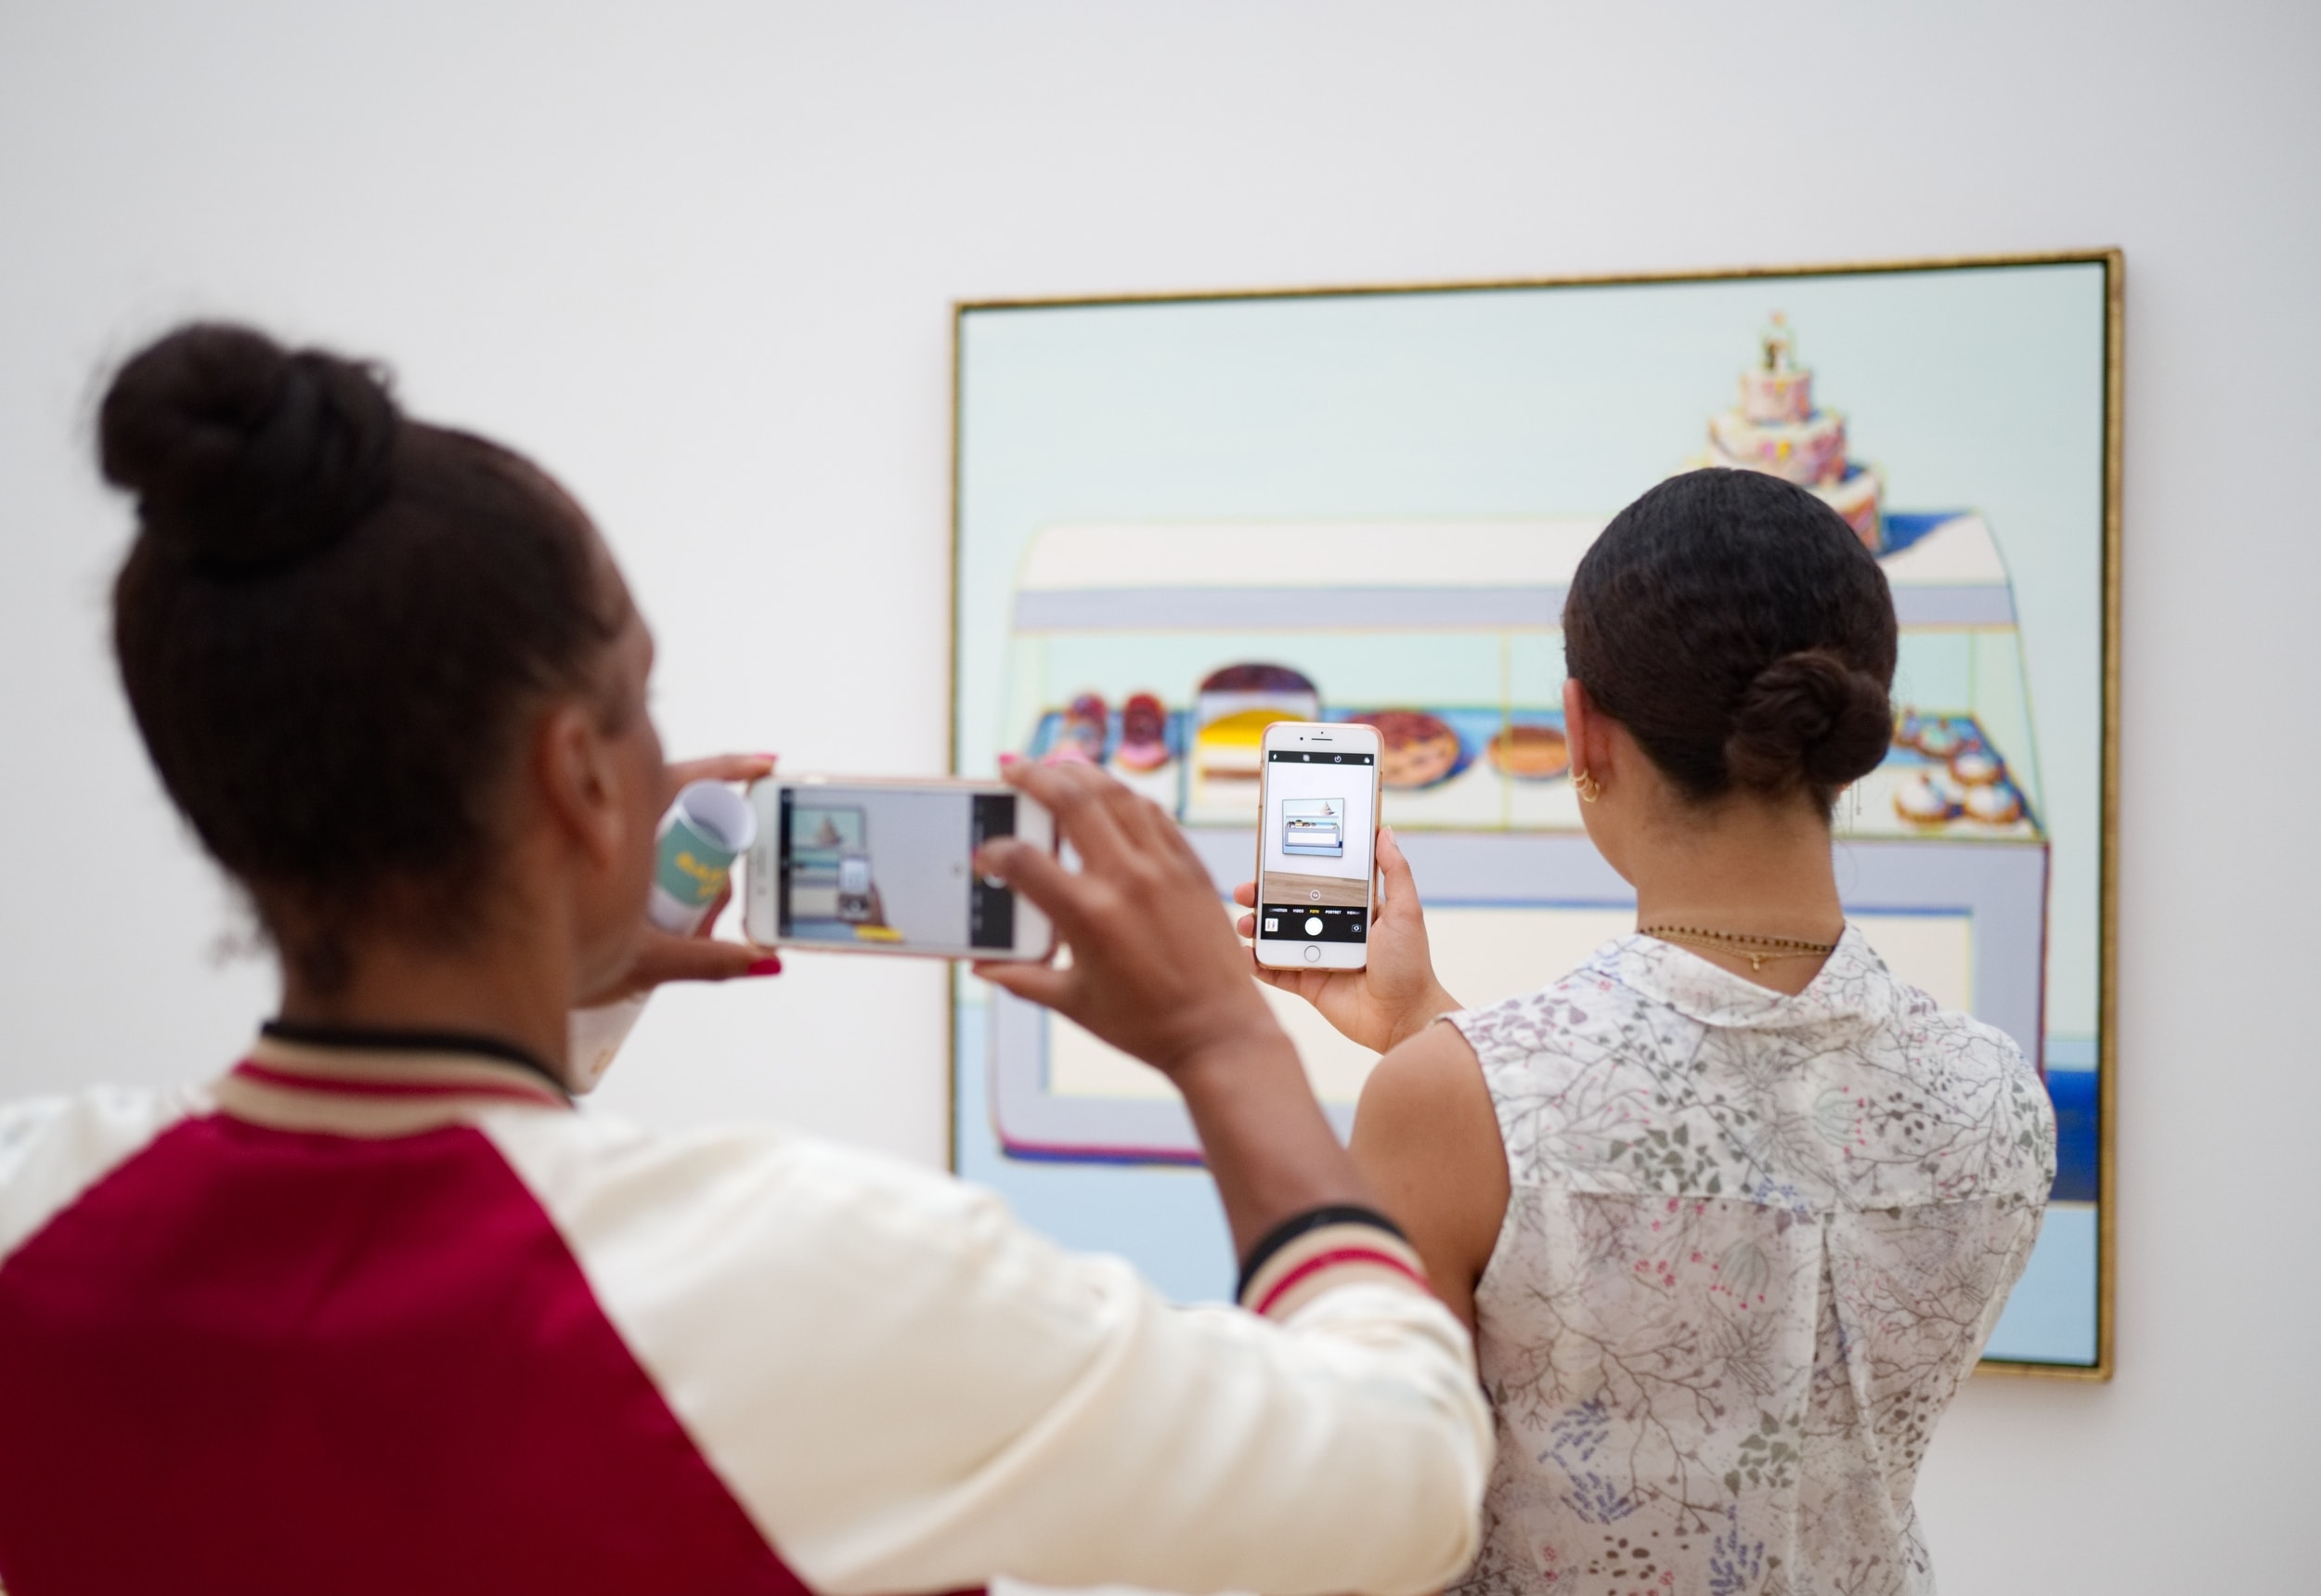 Two museum visitors hold take pictures of a Wayne Thiebaud painting on their smartphones.